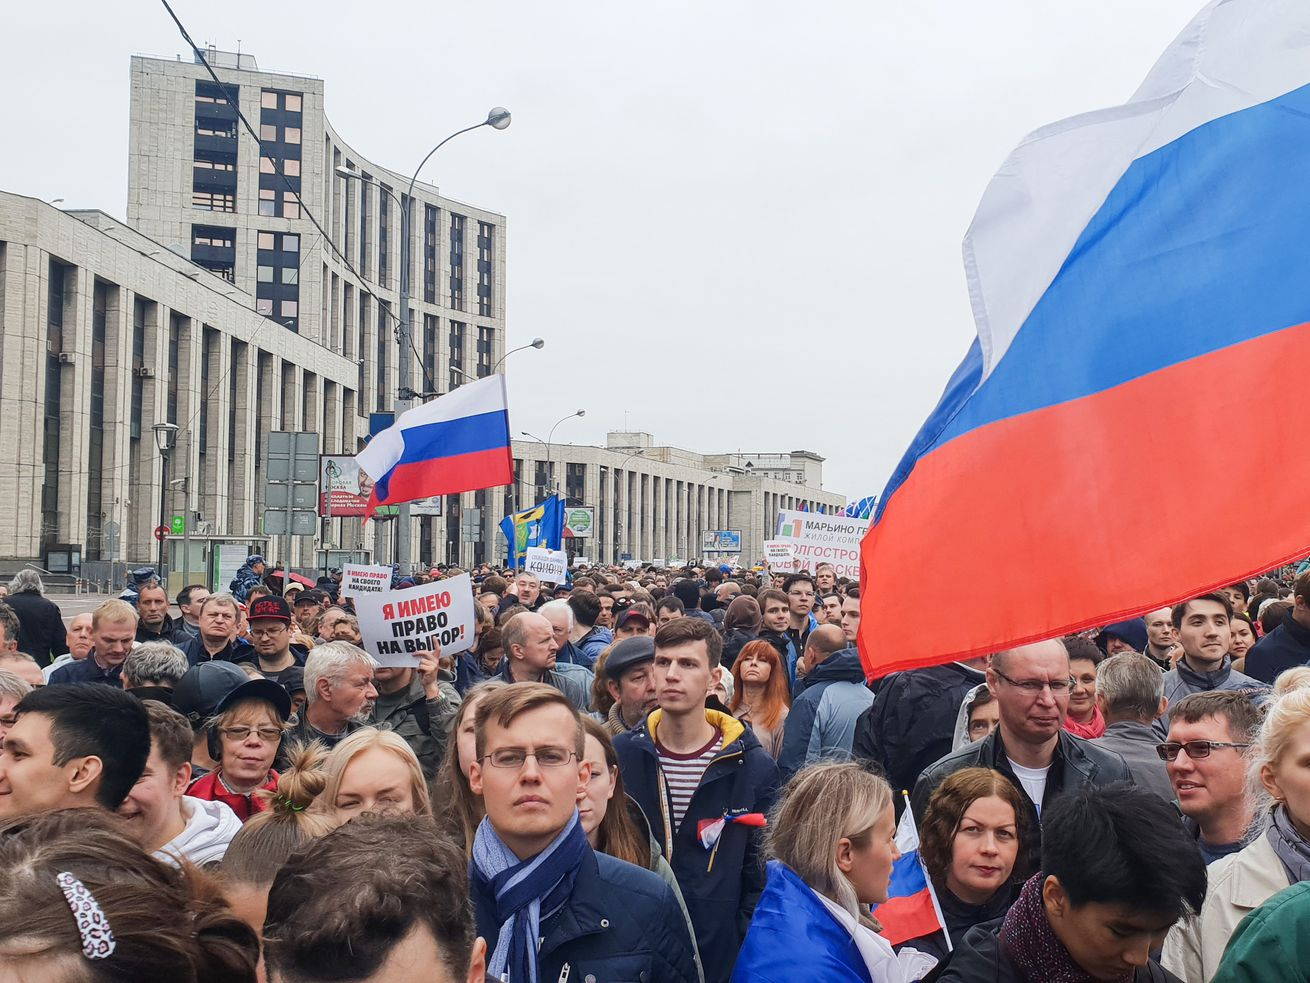 A crowd fills a street in Moscow as people carry flags in protest.